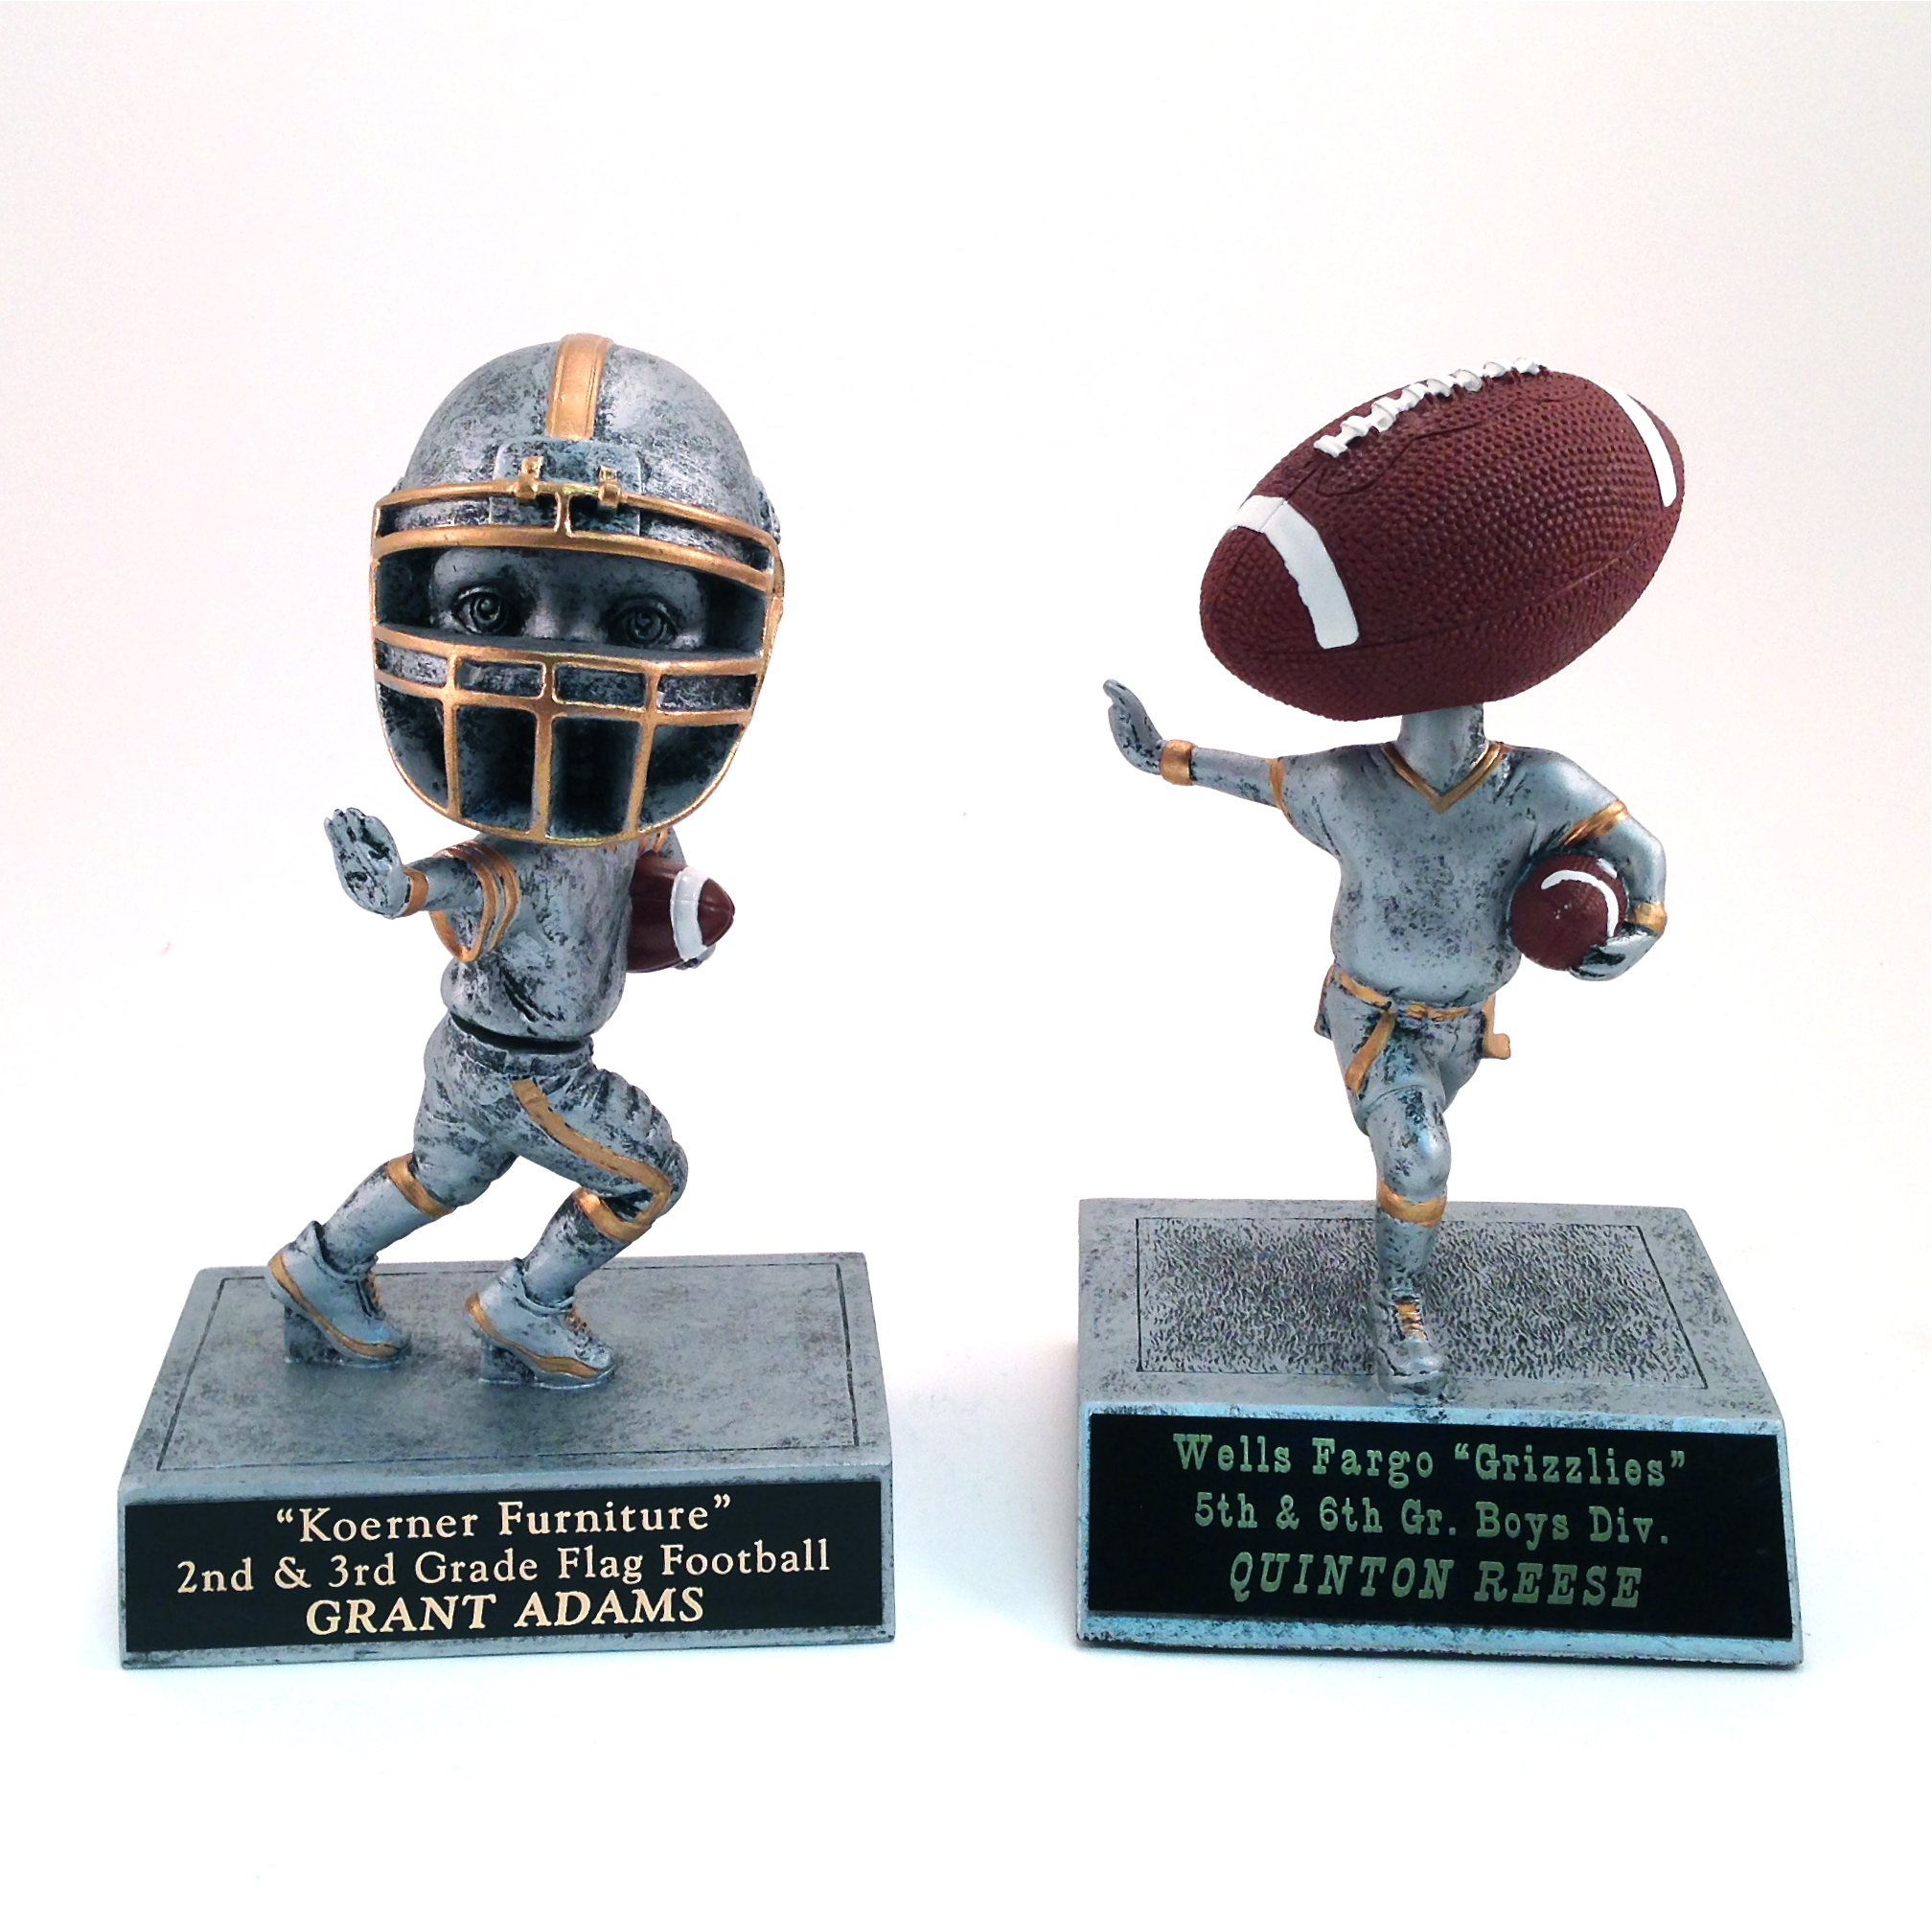 Football Bobbleheads - $18.02 each (Includes tax & engraving) Specify Jr. Tackle or Flag Football. [ITEM#:  16A ]